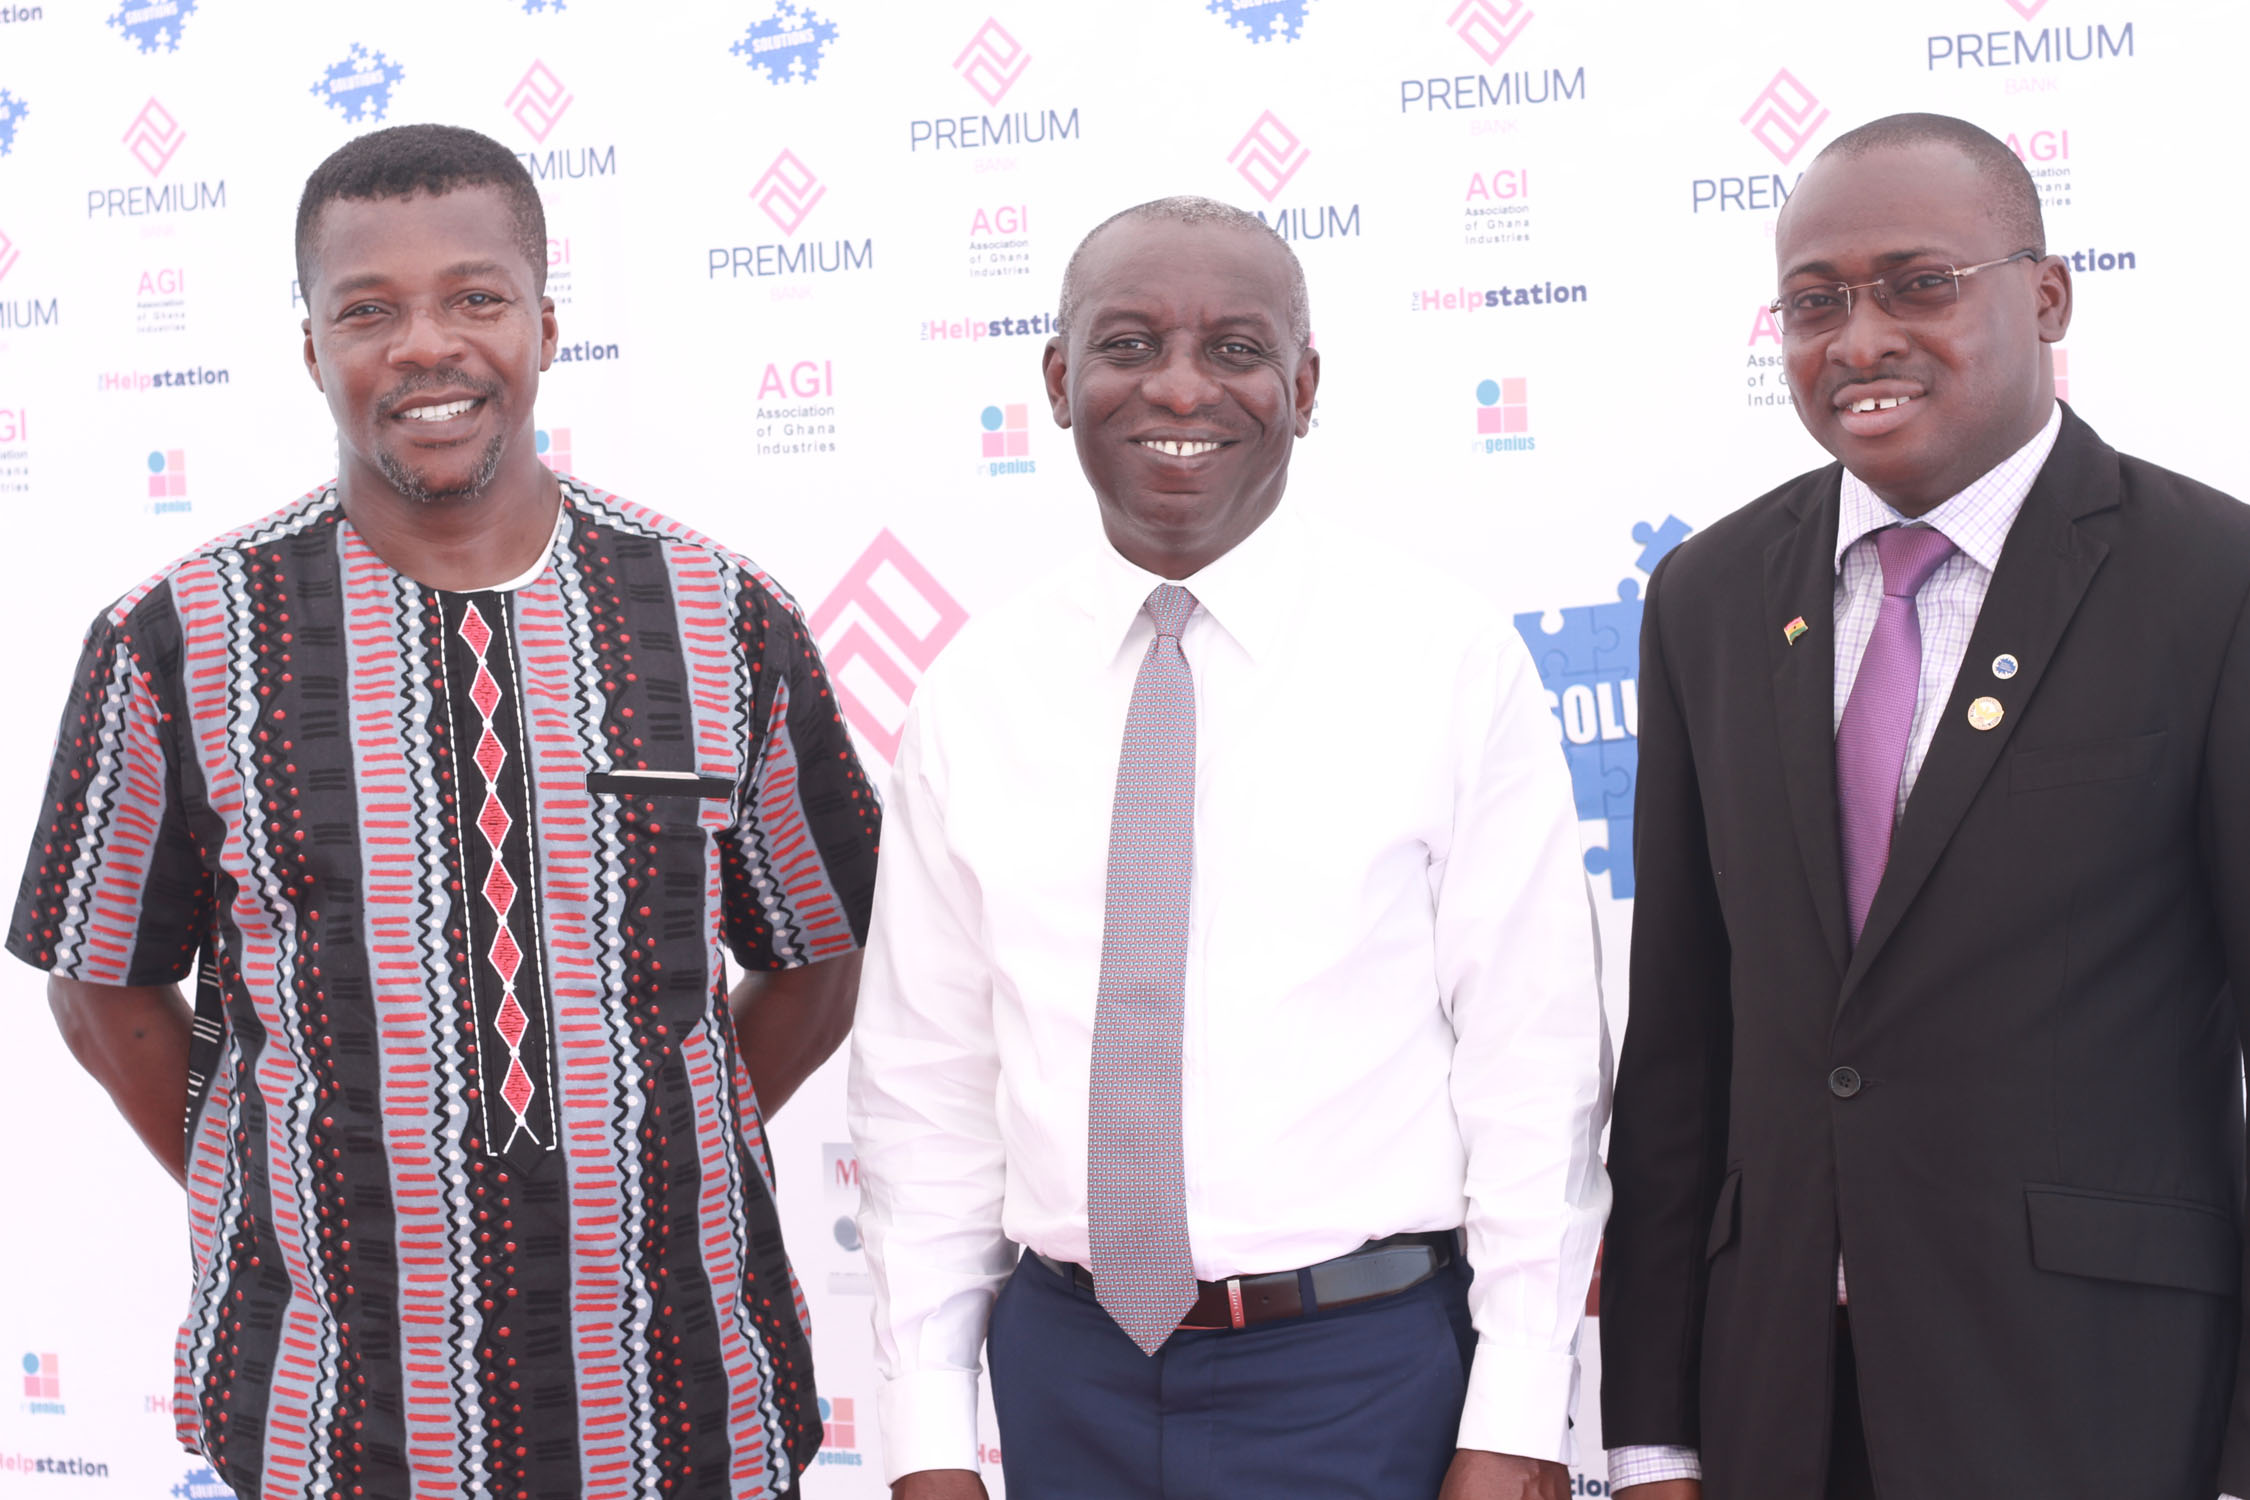 From left to right, Mr Kwame Boadi, MD of inGenius Africa, Mr Kwasi Tumi, MD of Premium Bank and Mr Tsonam Akeloo, Greater Accra Regional Chairman of the AGI.